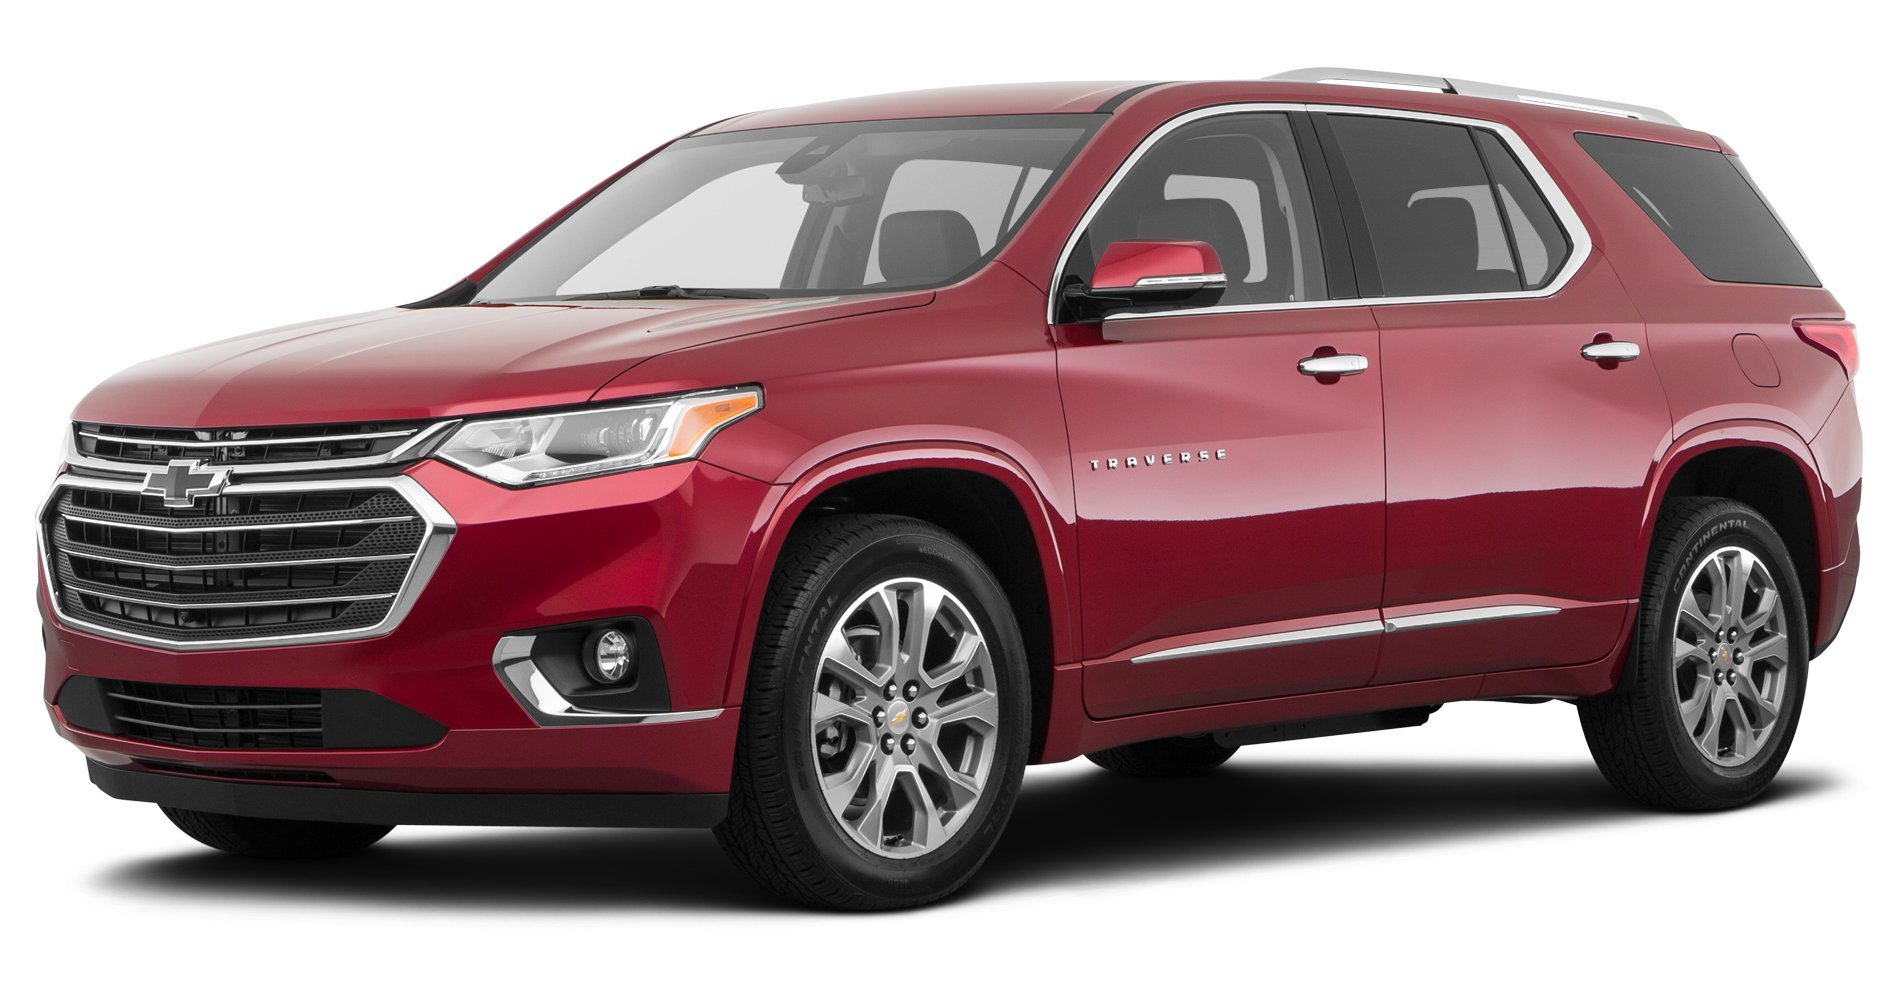 Amazon.com: 2018 Chevrolet Traverse Reviews, Images, and Specs ...